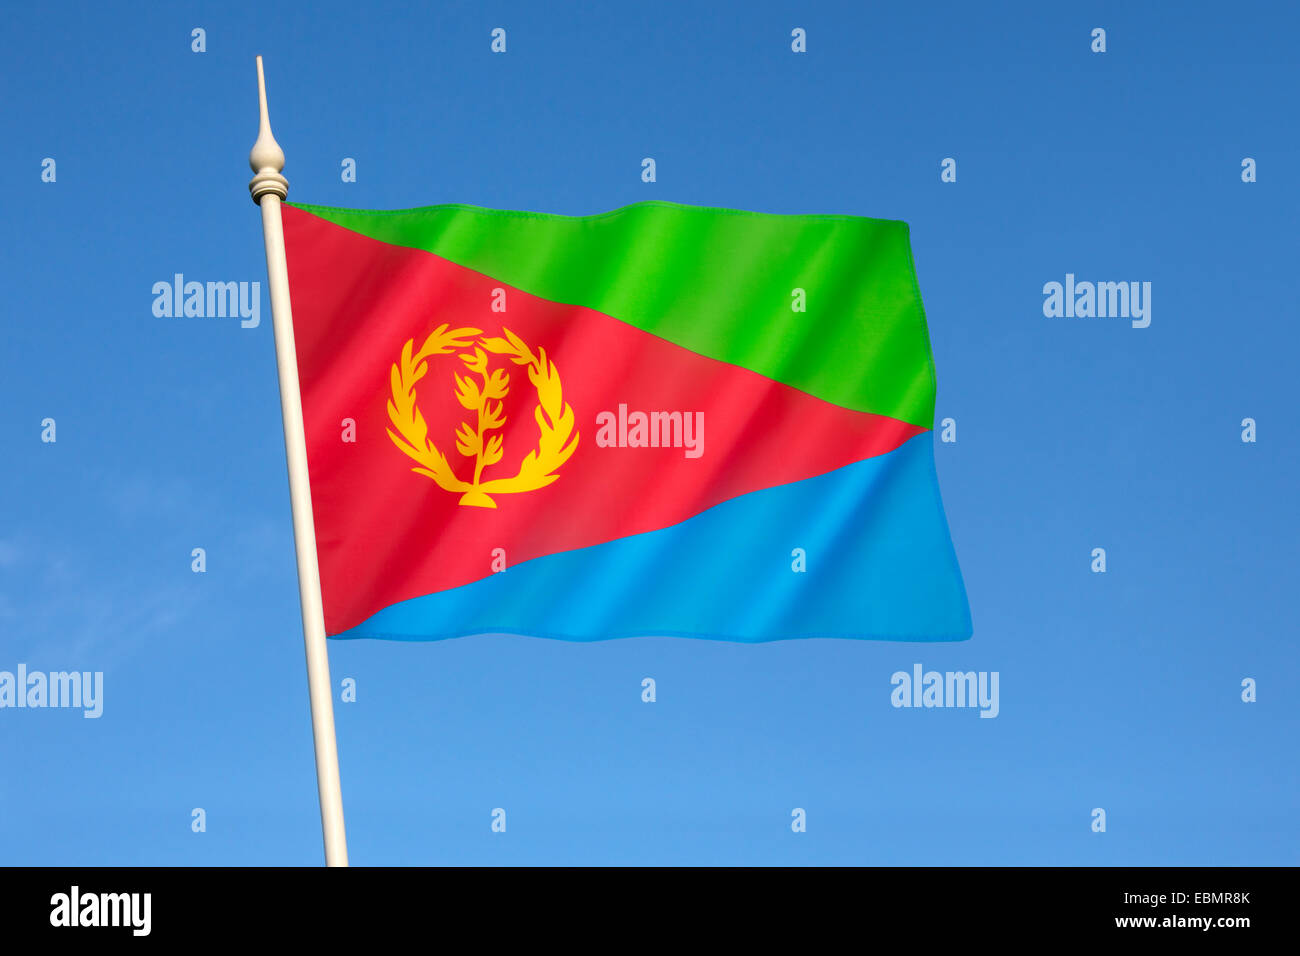 Flag of Eritrea - adopted on 5th December 1995. - Stock Image